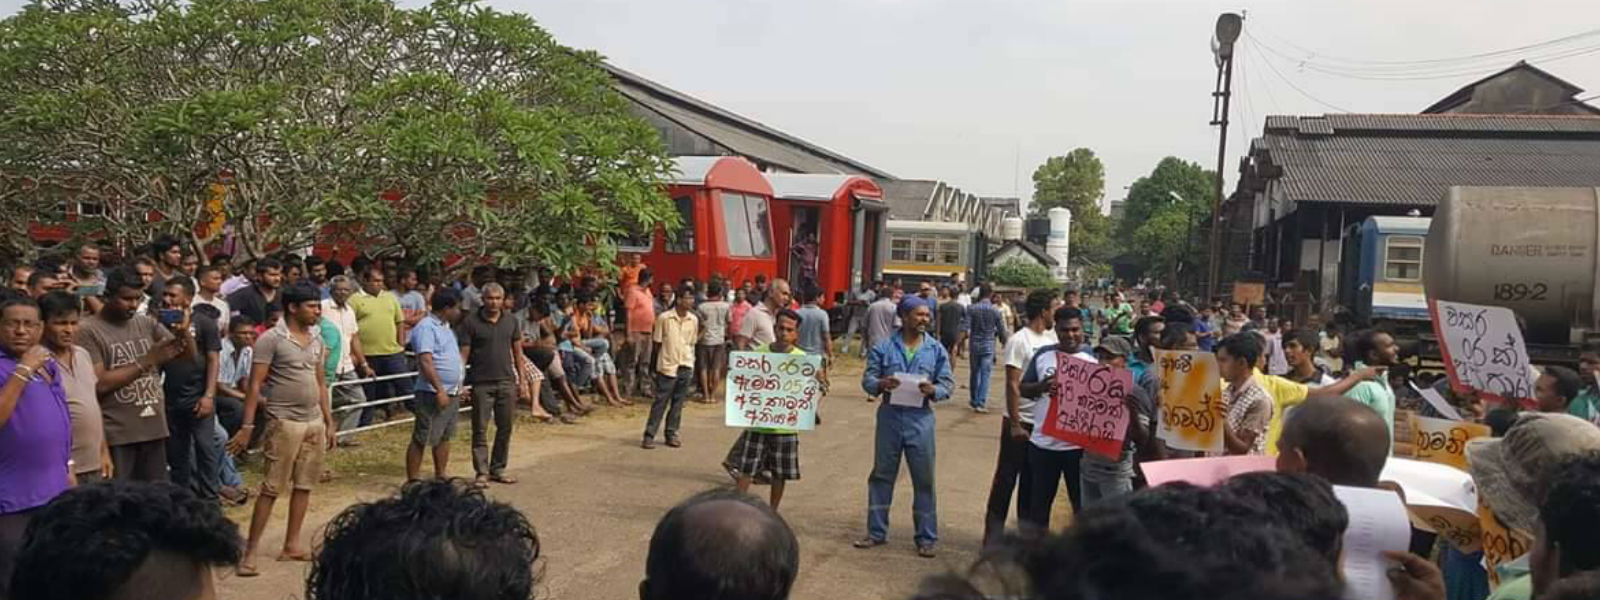 Railway workers stage another protest